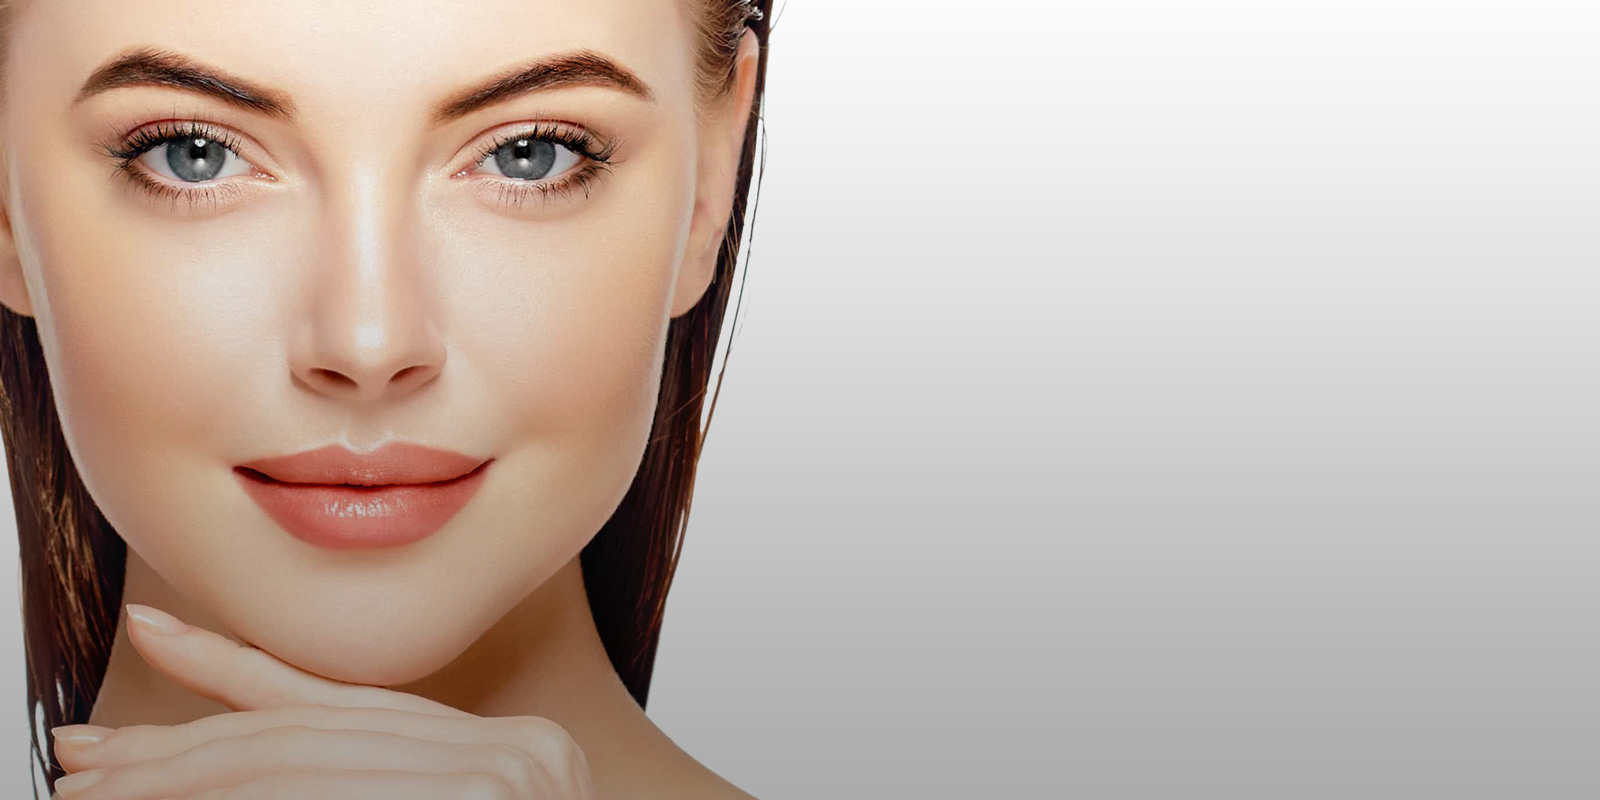 Smile Lift Facial Aesthetics Clearwater FL